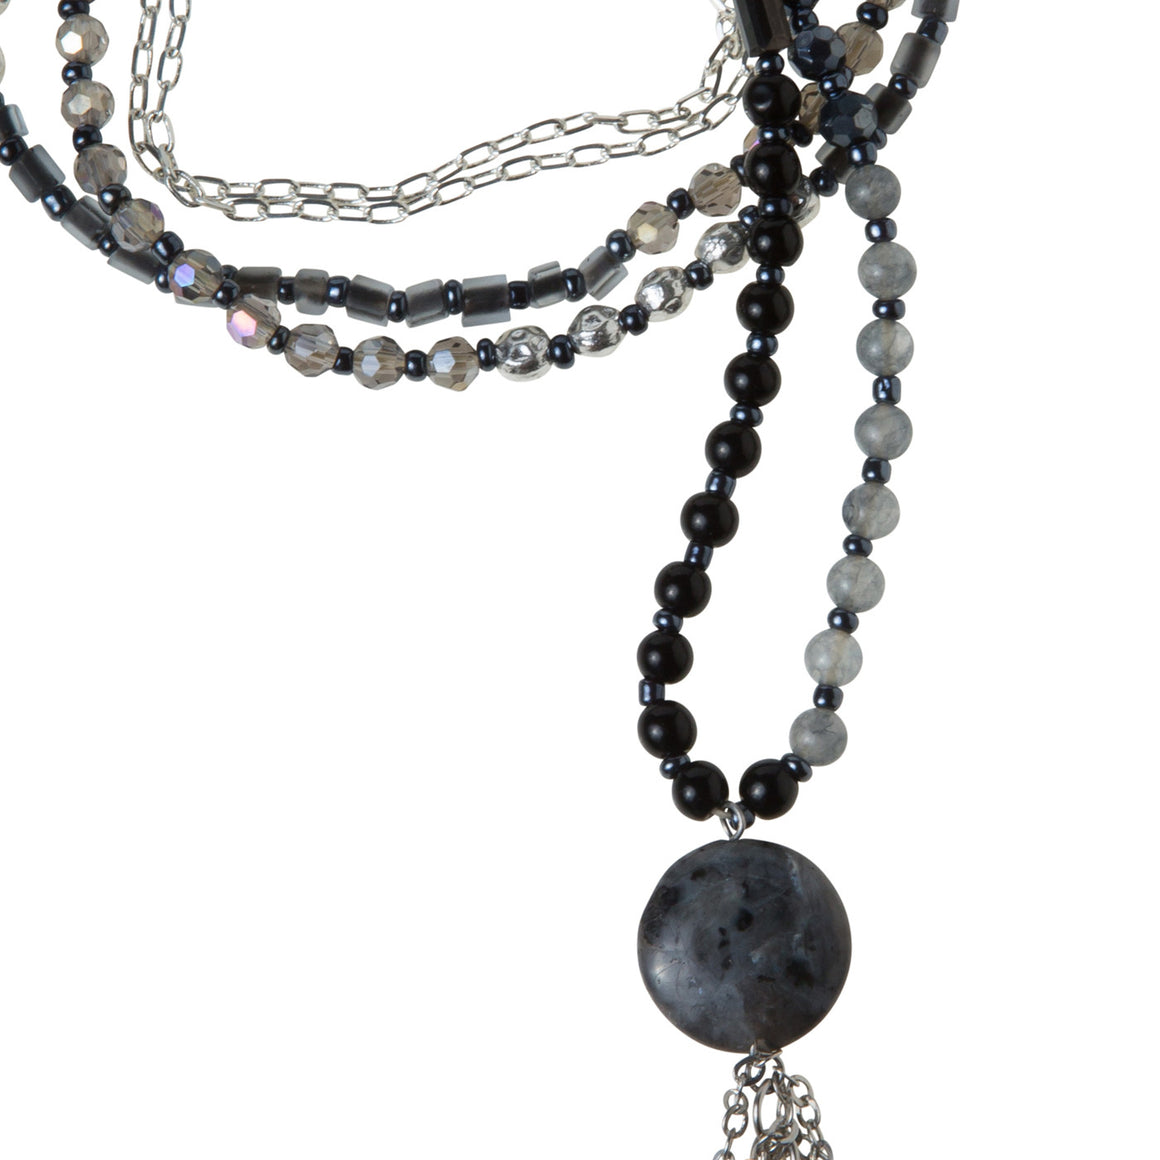 Daily Mala Necklace : black/silver